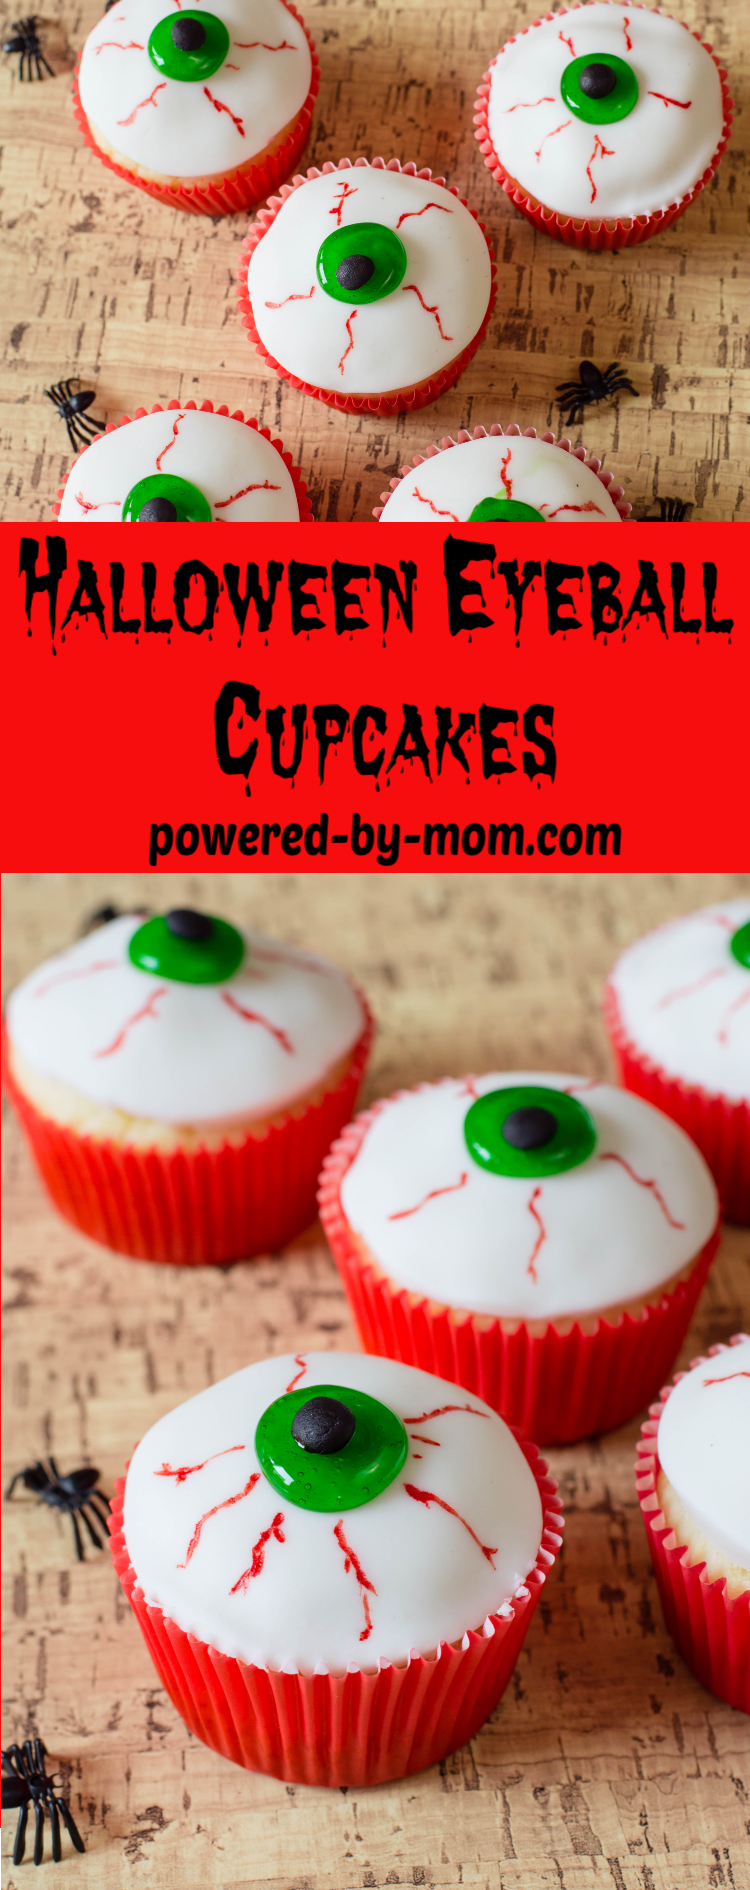 This Halloween Eyeballs Easy Halloween Cupcakes recipe uses a cake mix as a base and creates a fun and easy eyeball topping that is both spooky and delicious!